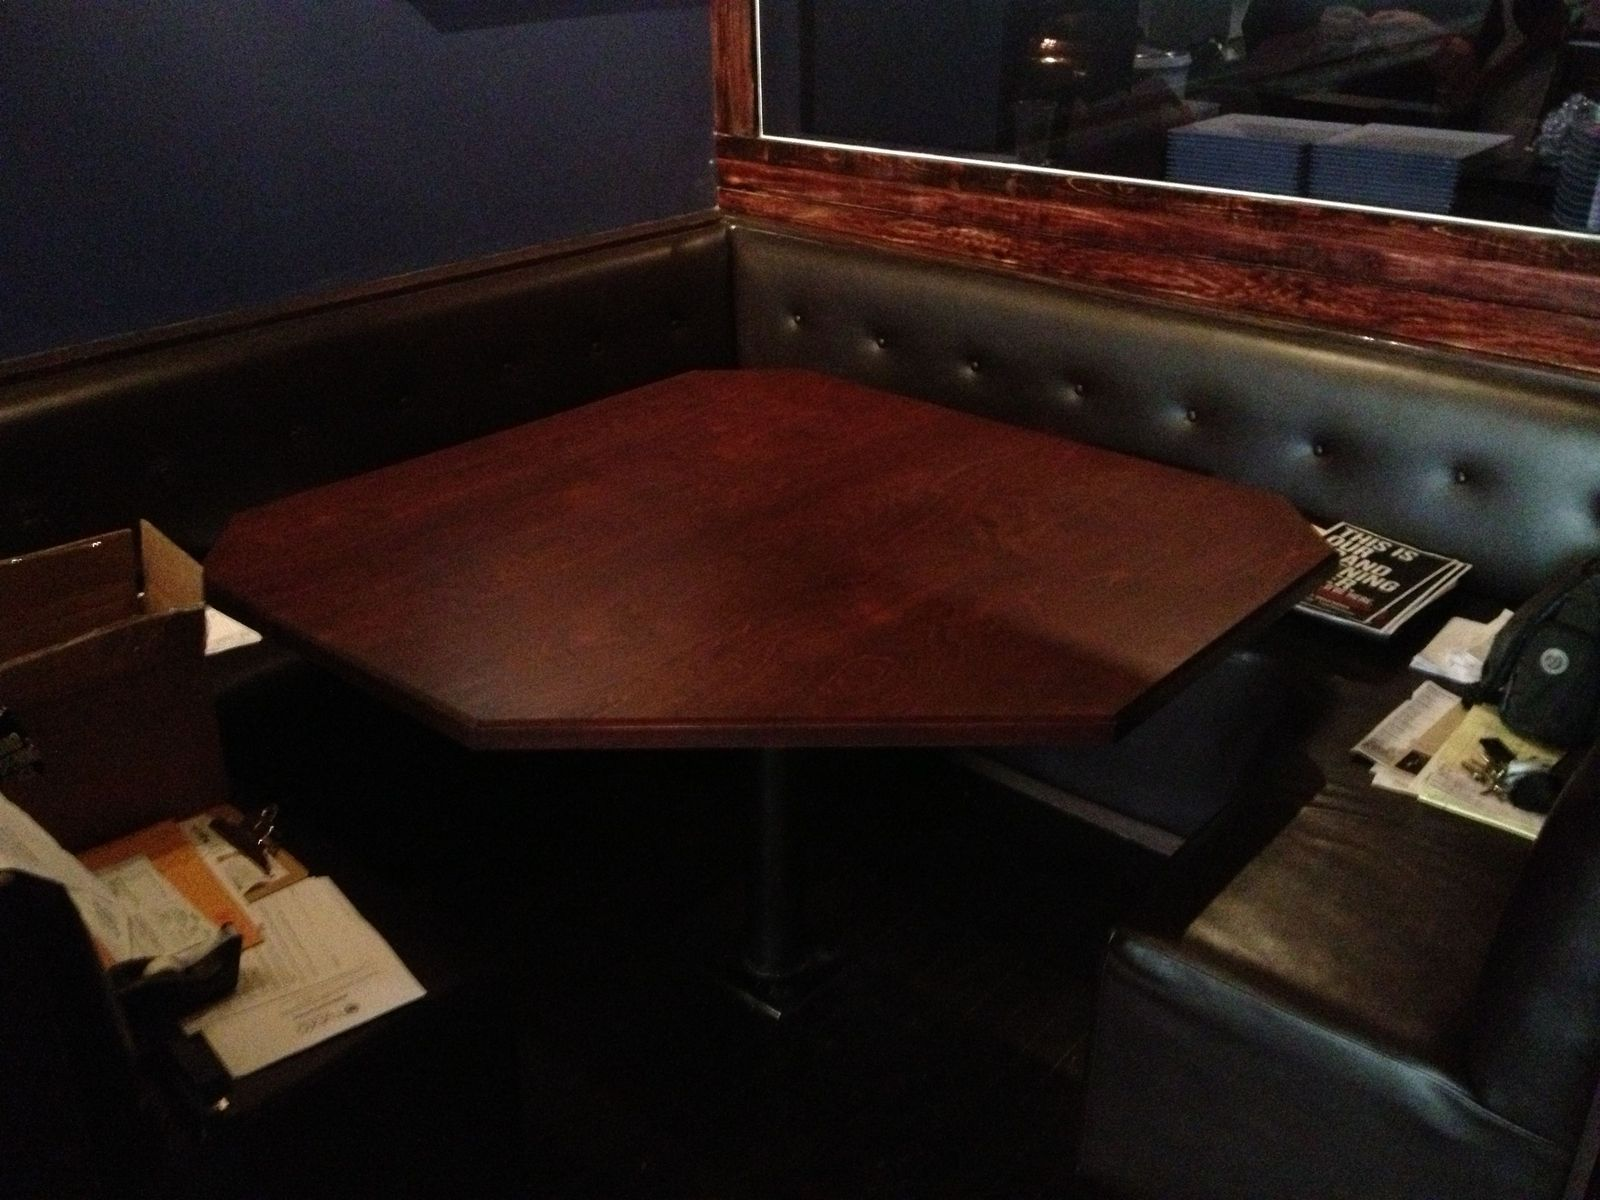 Hand Crafted Restaurant Table Tops By MAD Woodwork CustomMadecom - Custom restaurant table tops